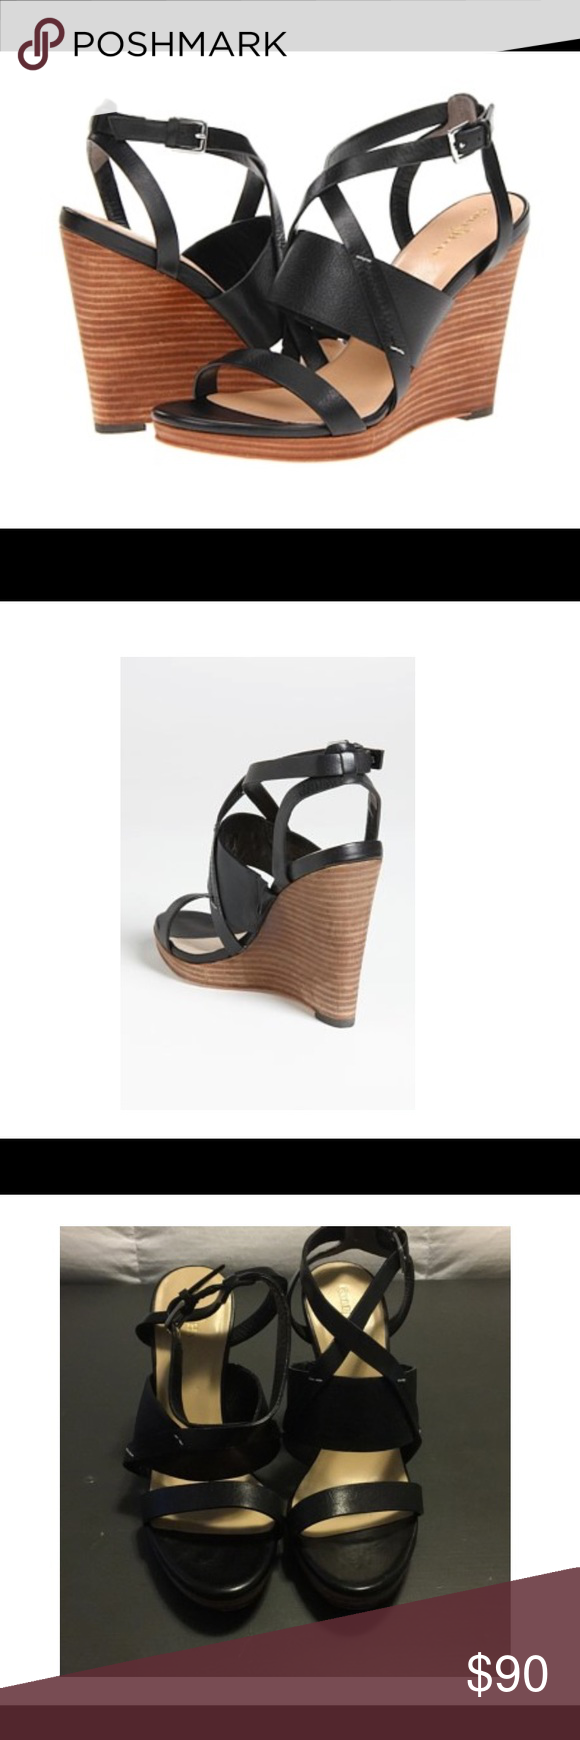 c3016ee1f Cole Haan Pelham Black Sandals A go-to sandal combines the sporty comfort  of Nike